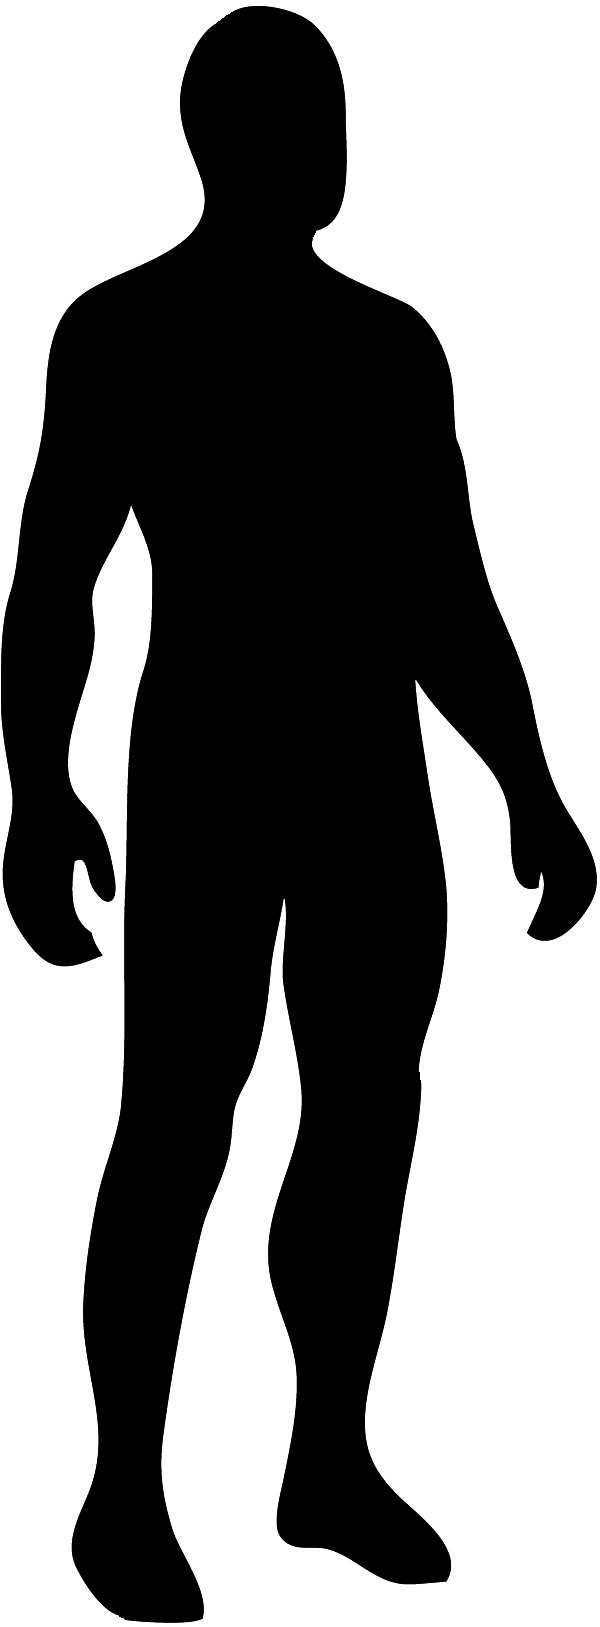 600x1627 Human Being Clipart Black And White